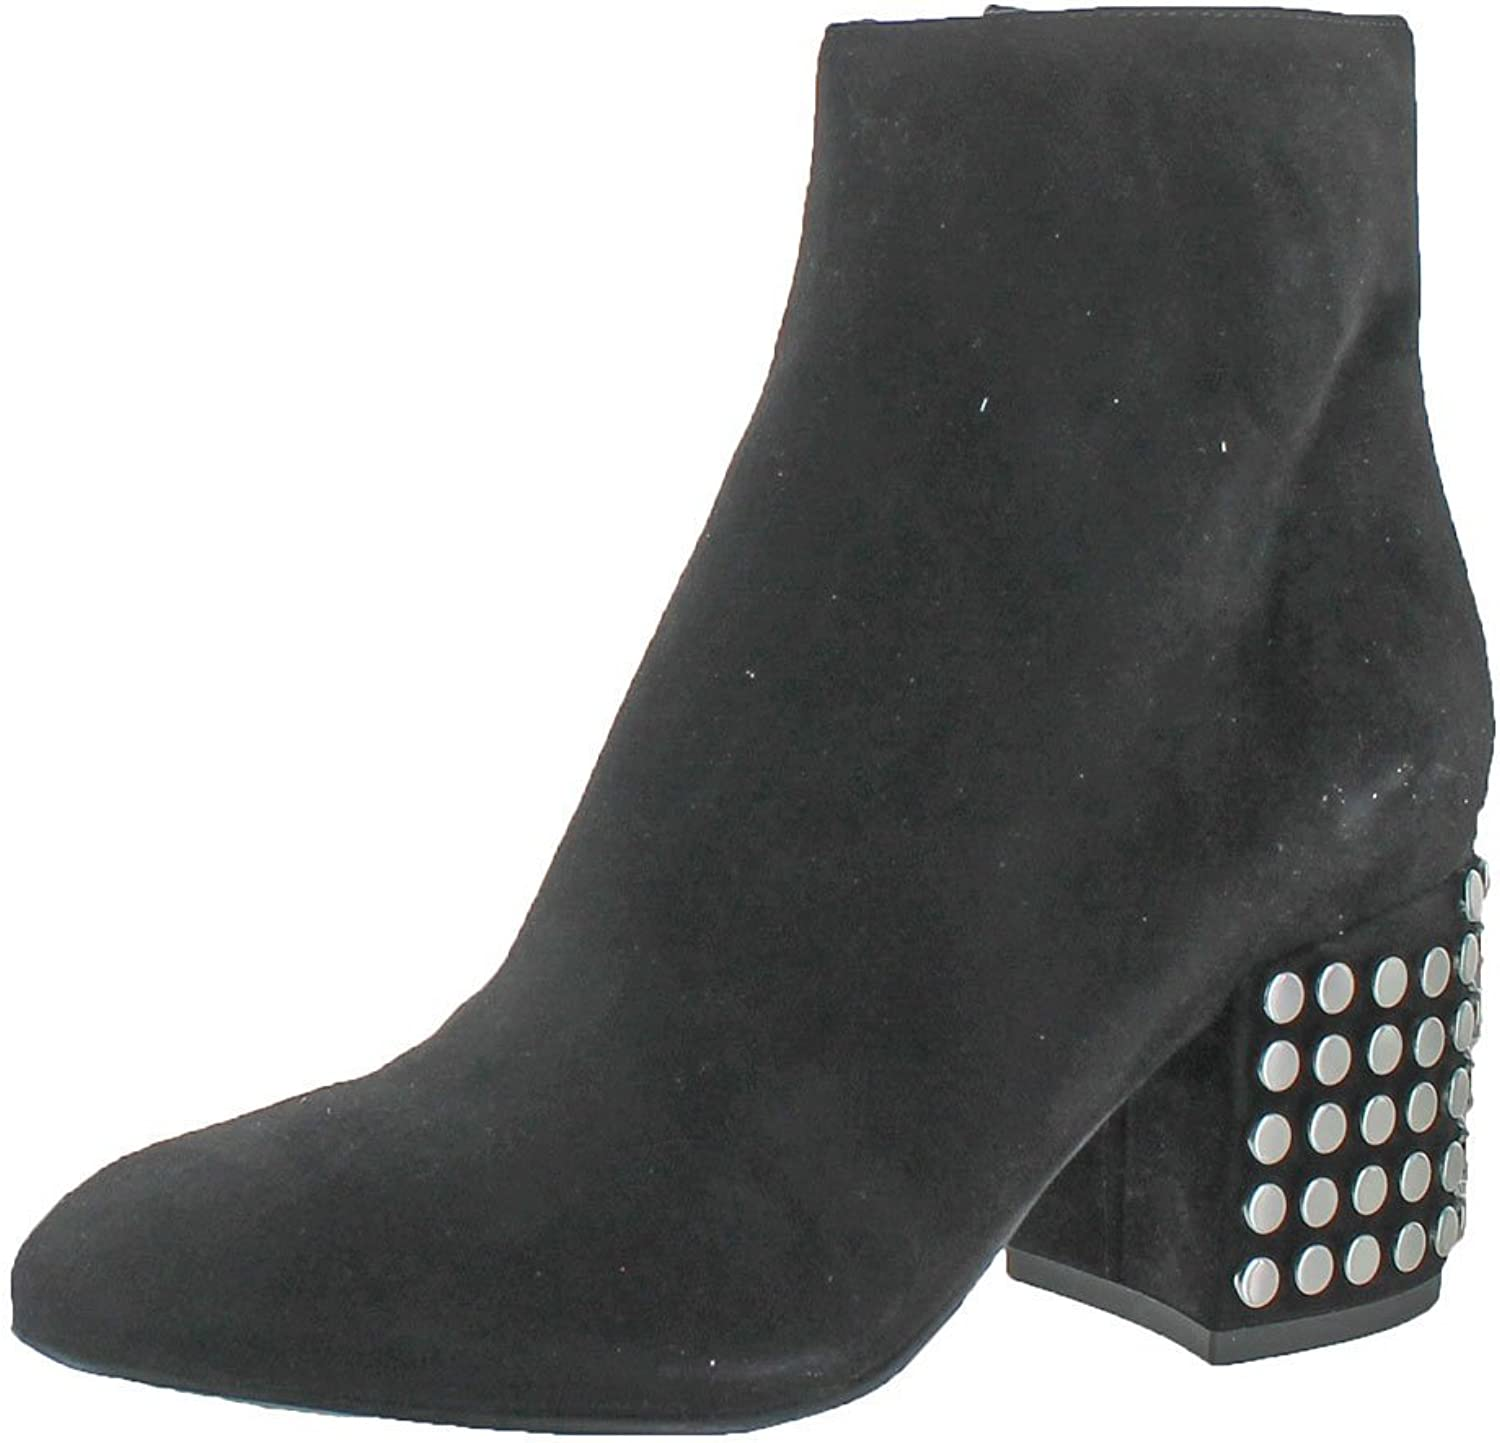 KENDALL + KYLIE Womens Blythe 3 Suede Studded Ankle Boots